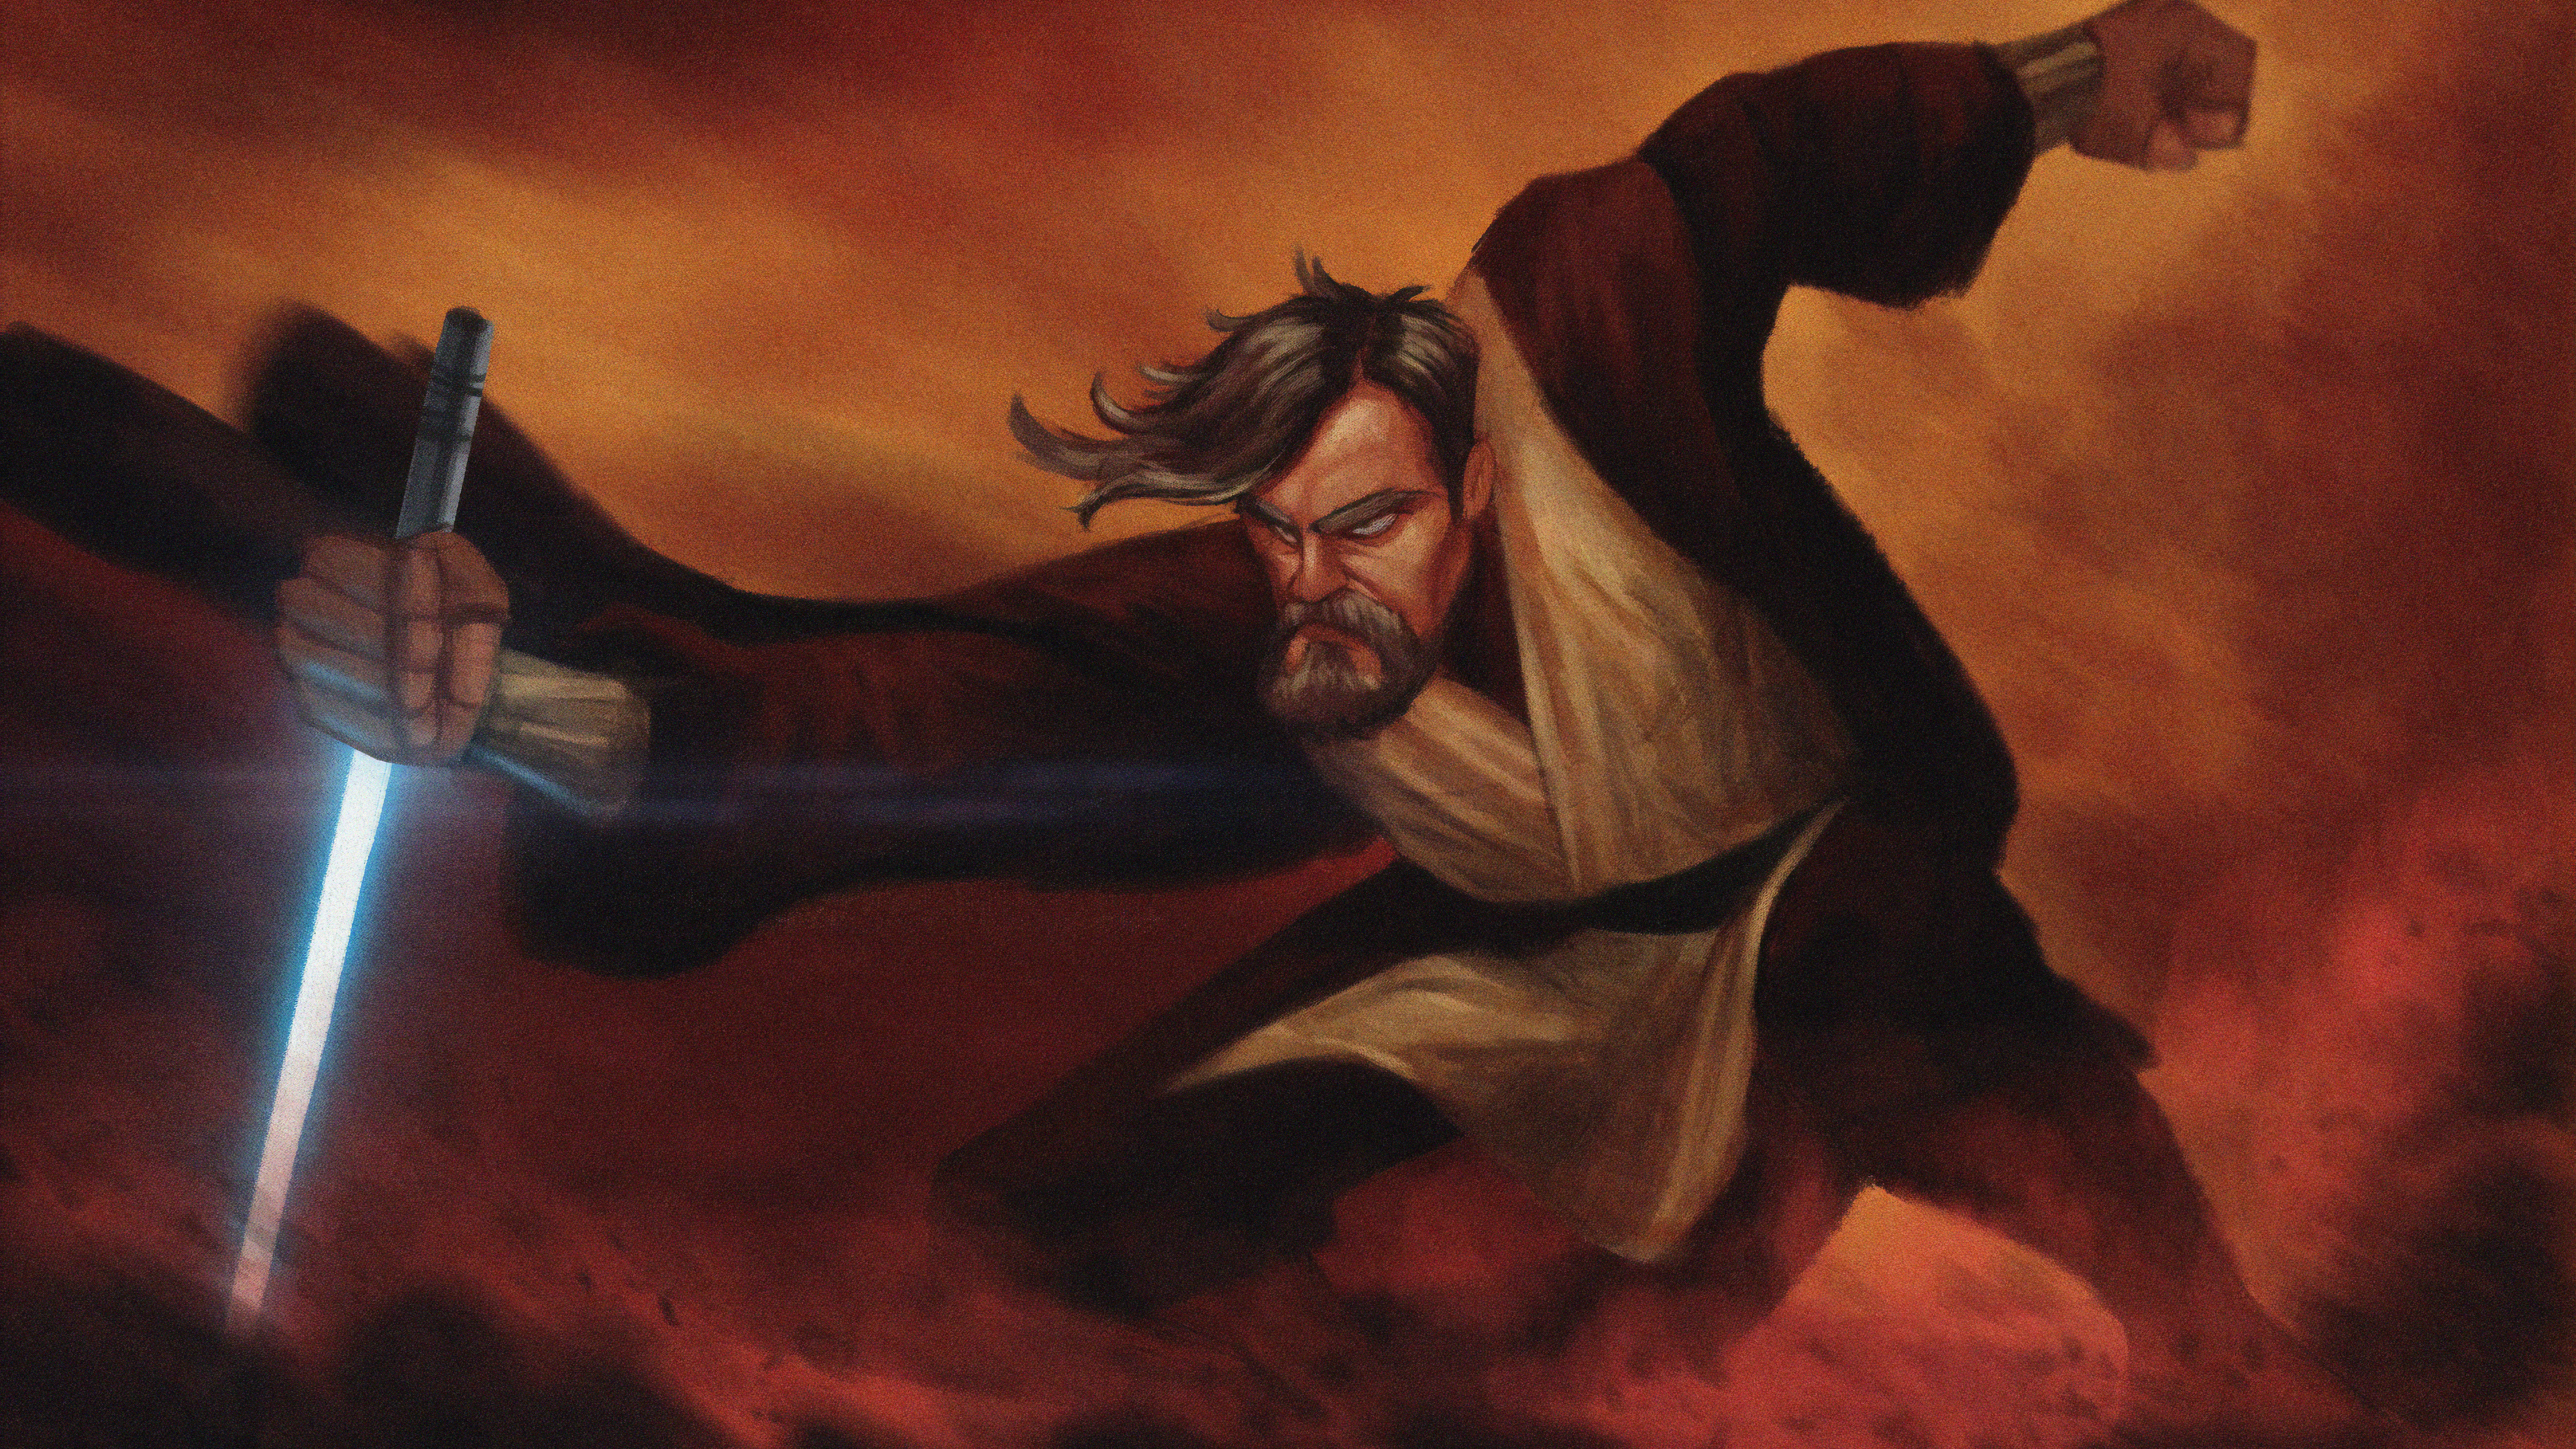 star wars obi wan artwork 4k 7n